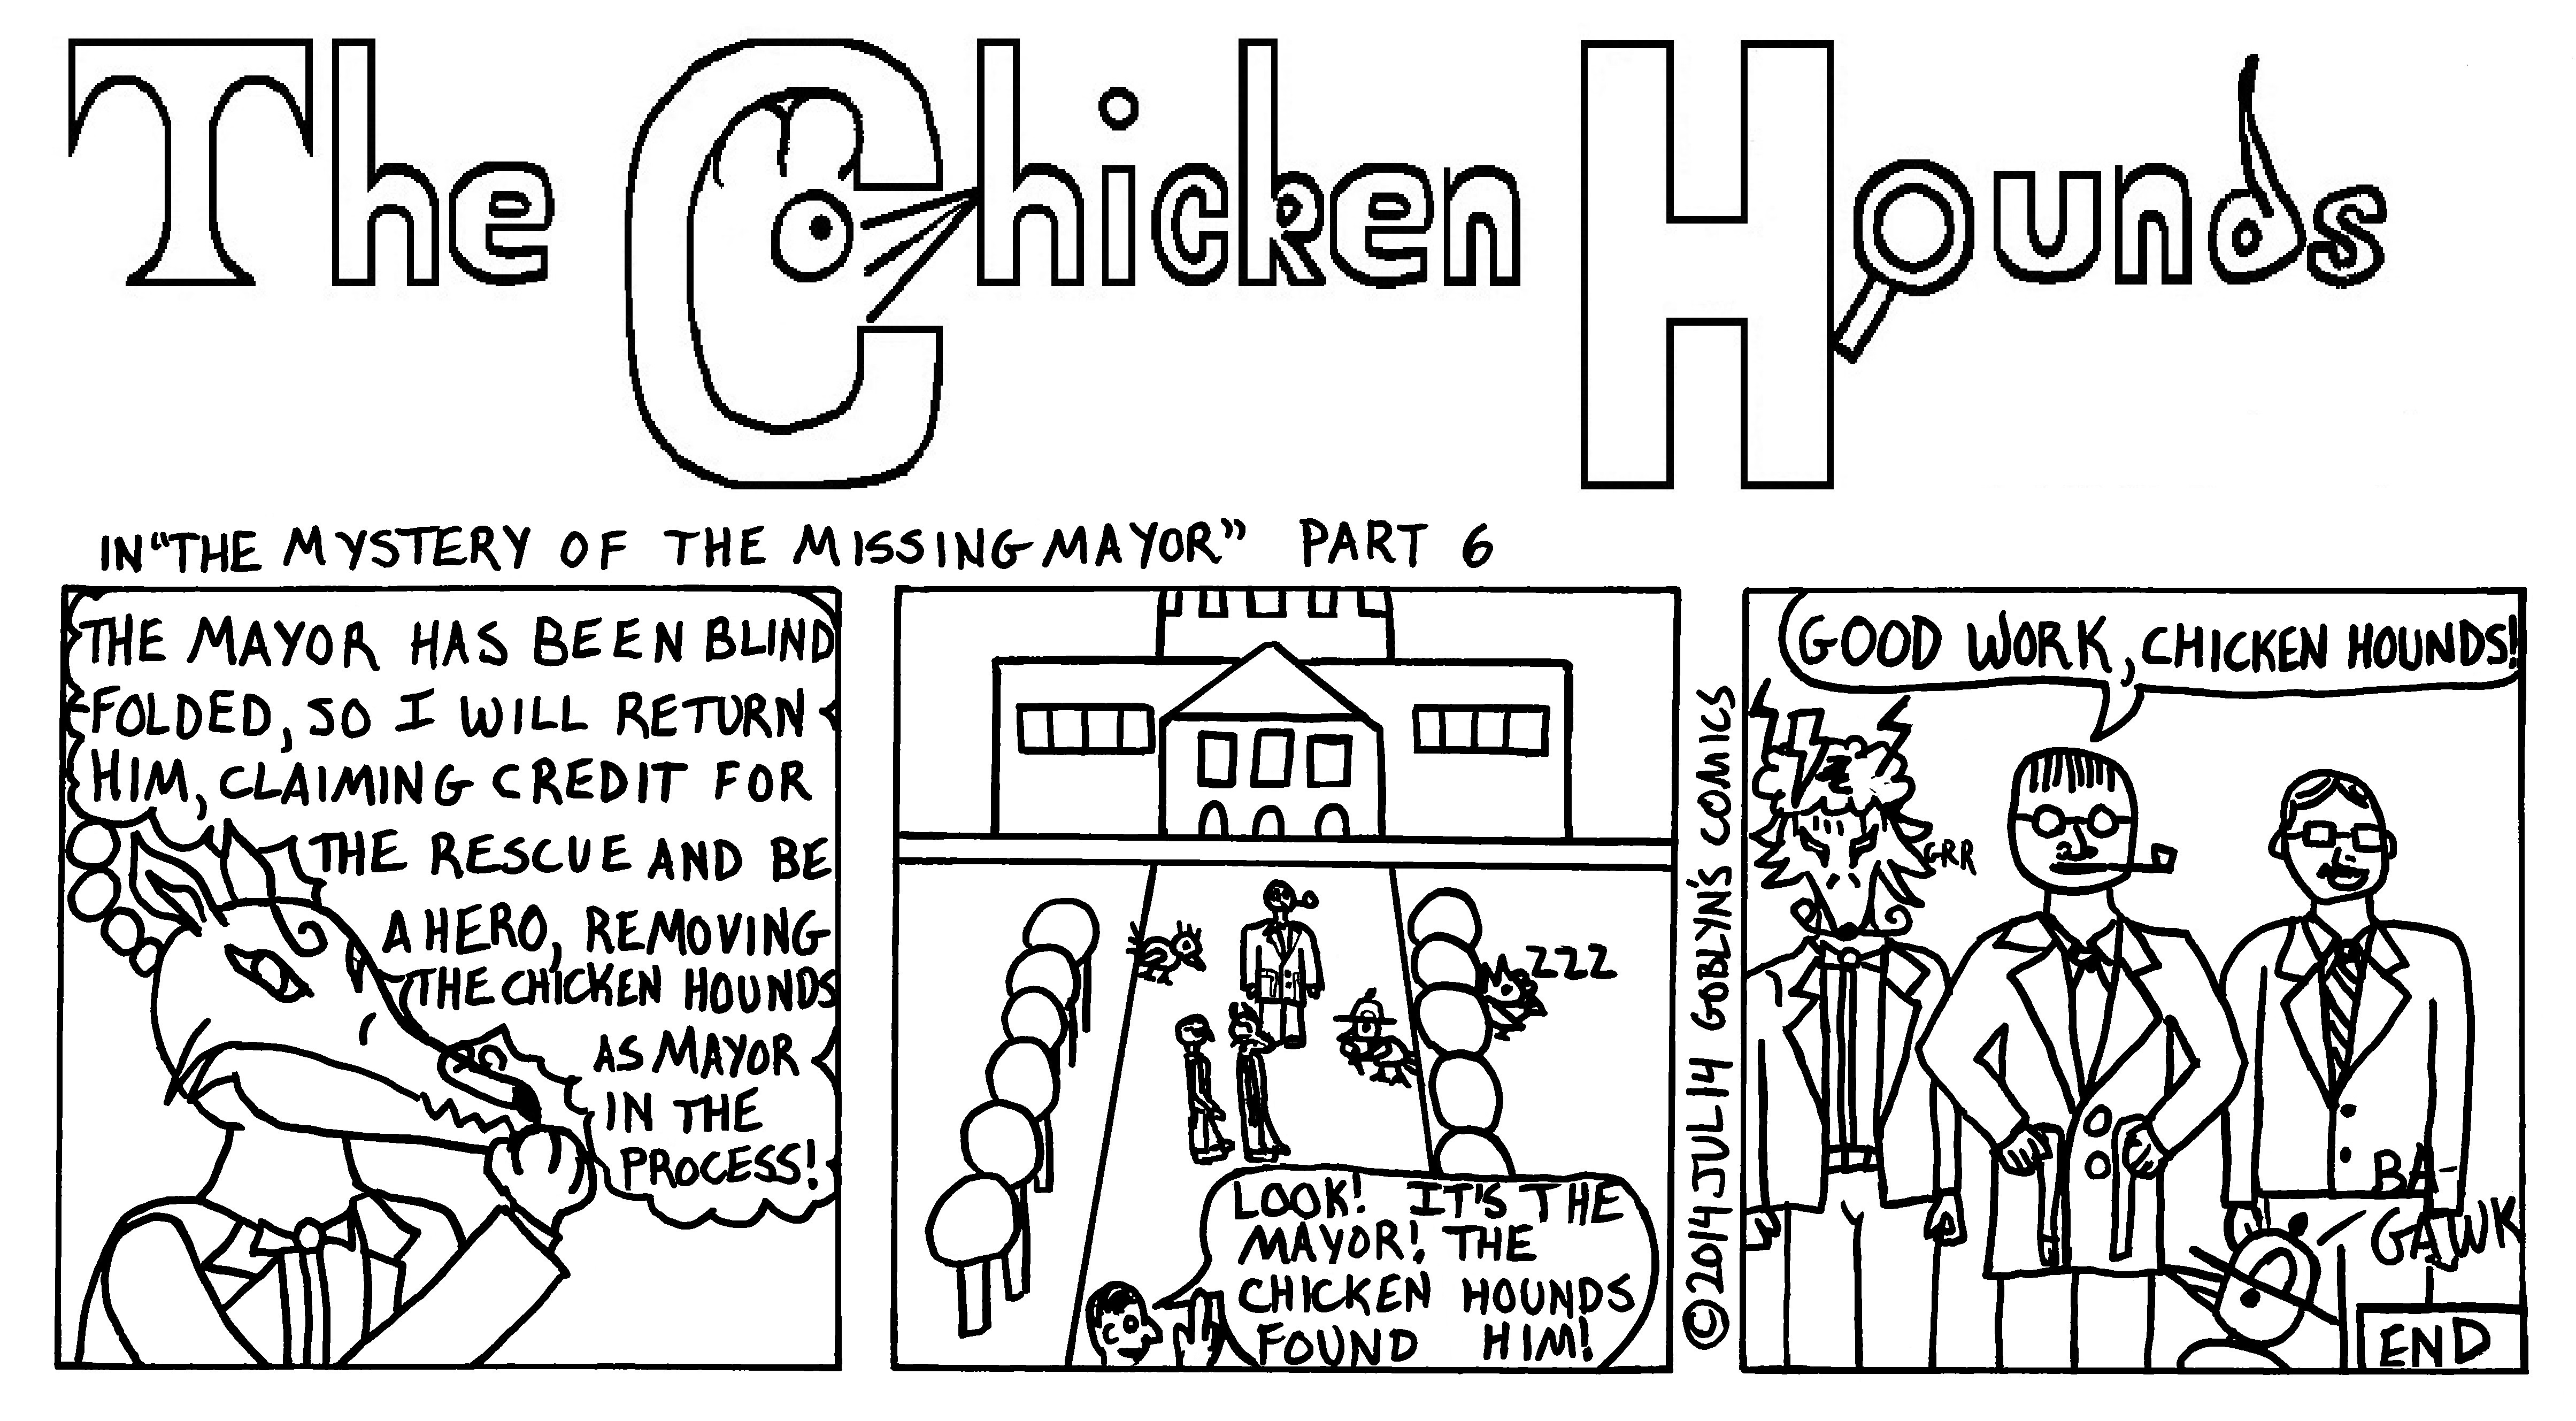 The Chicken Hounds in the Mystery of the Missing Mayor Part 6: Francisco Fox's plans come to an end.